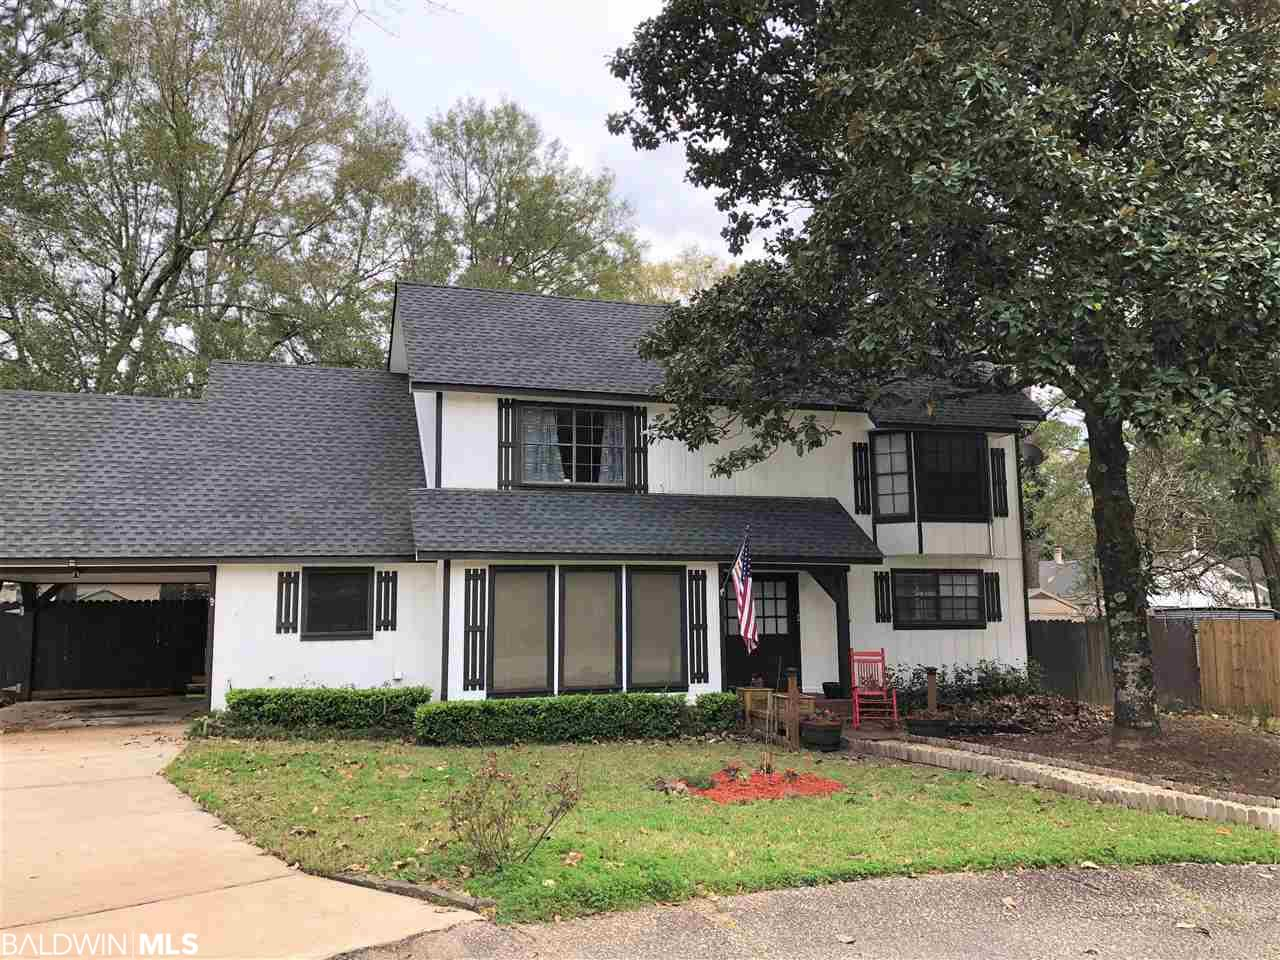 Fantastic 3bed/3bath home on quiet culdesac with a level yard. New water heater in 2020. New roof in 2017. New hardwood & tile flooring throughout in 2018. No carpet. New HVAC in 2019. Living room has stone wood burning fireplace with high ceiling and exposed beams, along with two sets of french doors leading to patio. Open floor plan has dining area that is currently used as additional seating area. Granite countertops in kitchen with lots of storage and nice island for extra space. Bright sunny breakfast area adjacent to kitchen. Bedroom downstairs currently used as office. Full bath downstairs renovated in 2018. Upstairs are two large bedrooms, each with ensuite bath. Walk-in attic has plenty of storage space.   Big backyard completely fenced.  Private patio . All updates per owner.  Lake Forest is a golf community that offers three newly renovated neighborhood pools, three playgrounds, tennis courts, The 19th Hole Clubhouse, stables for horseback riding, and the Lake Forest Yacht Club.